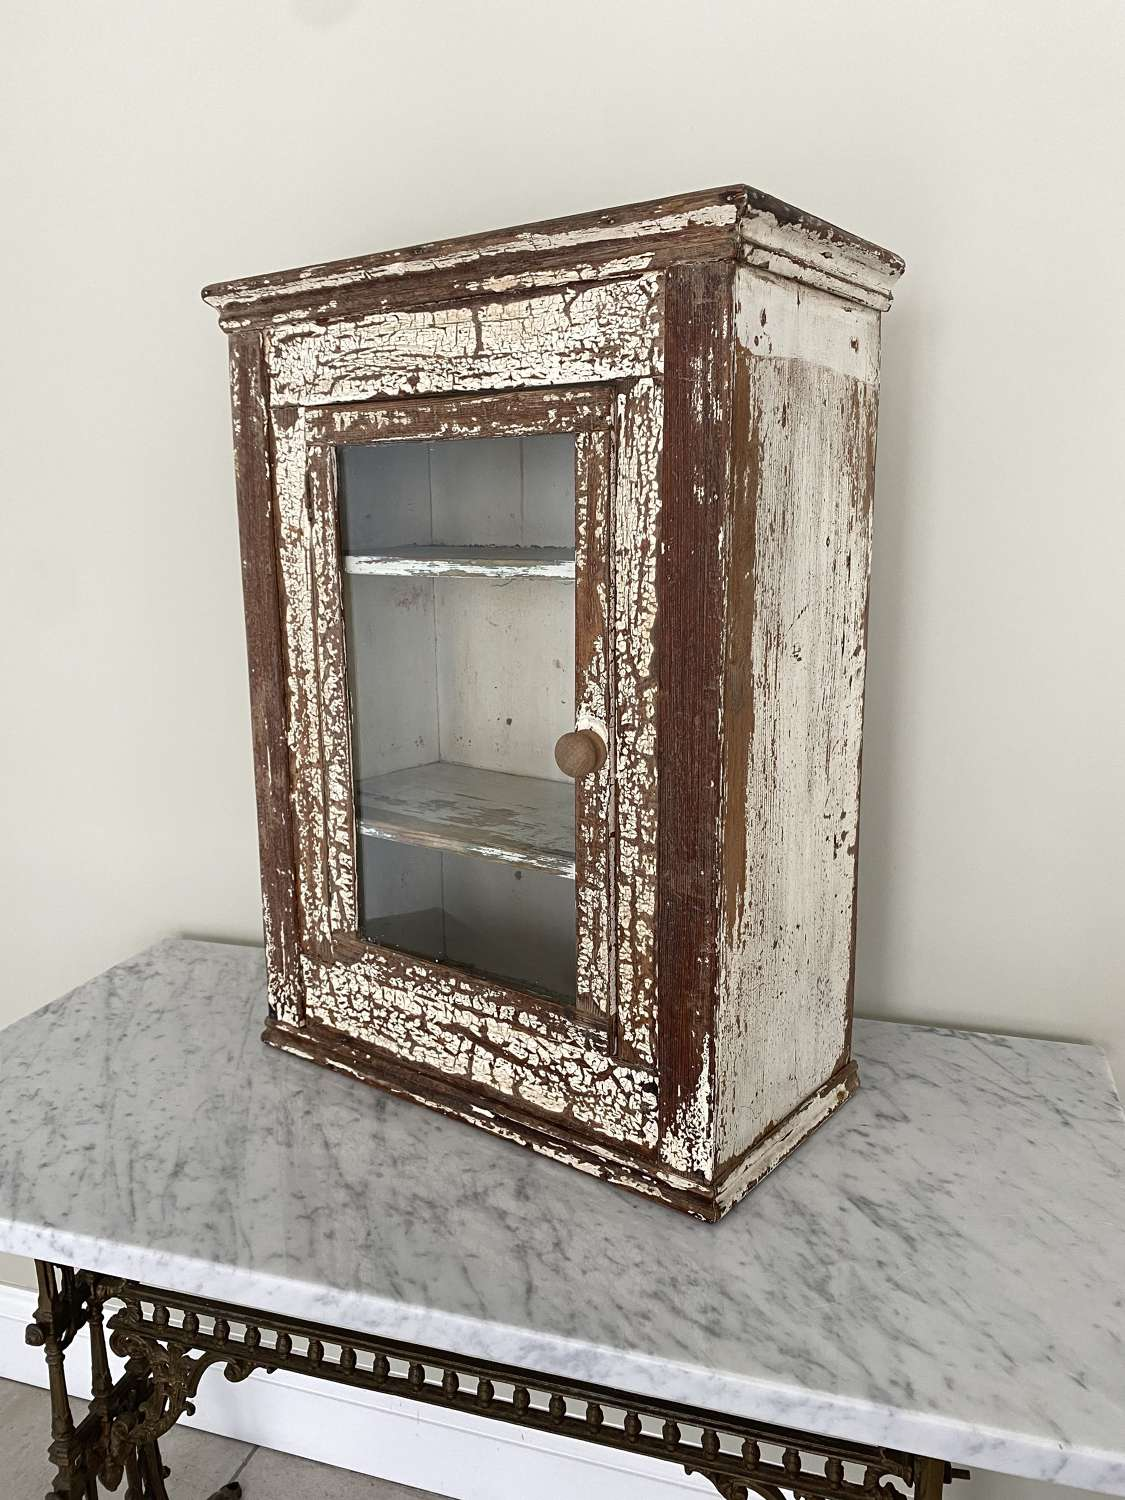 Early 20th Century Glazed Front Wall Cupboard - Original Paint